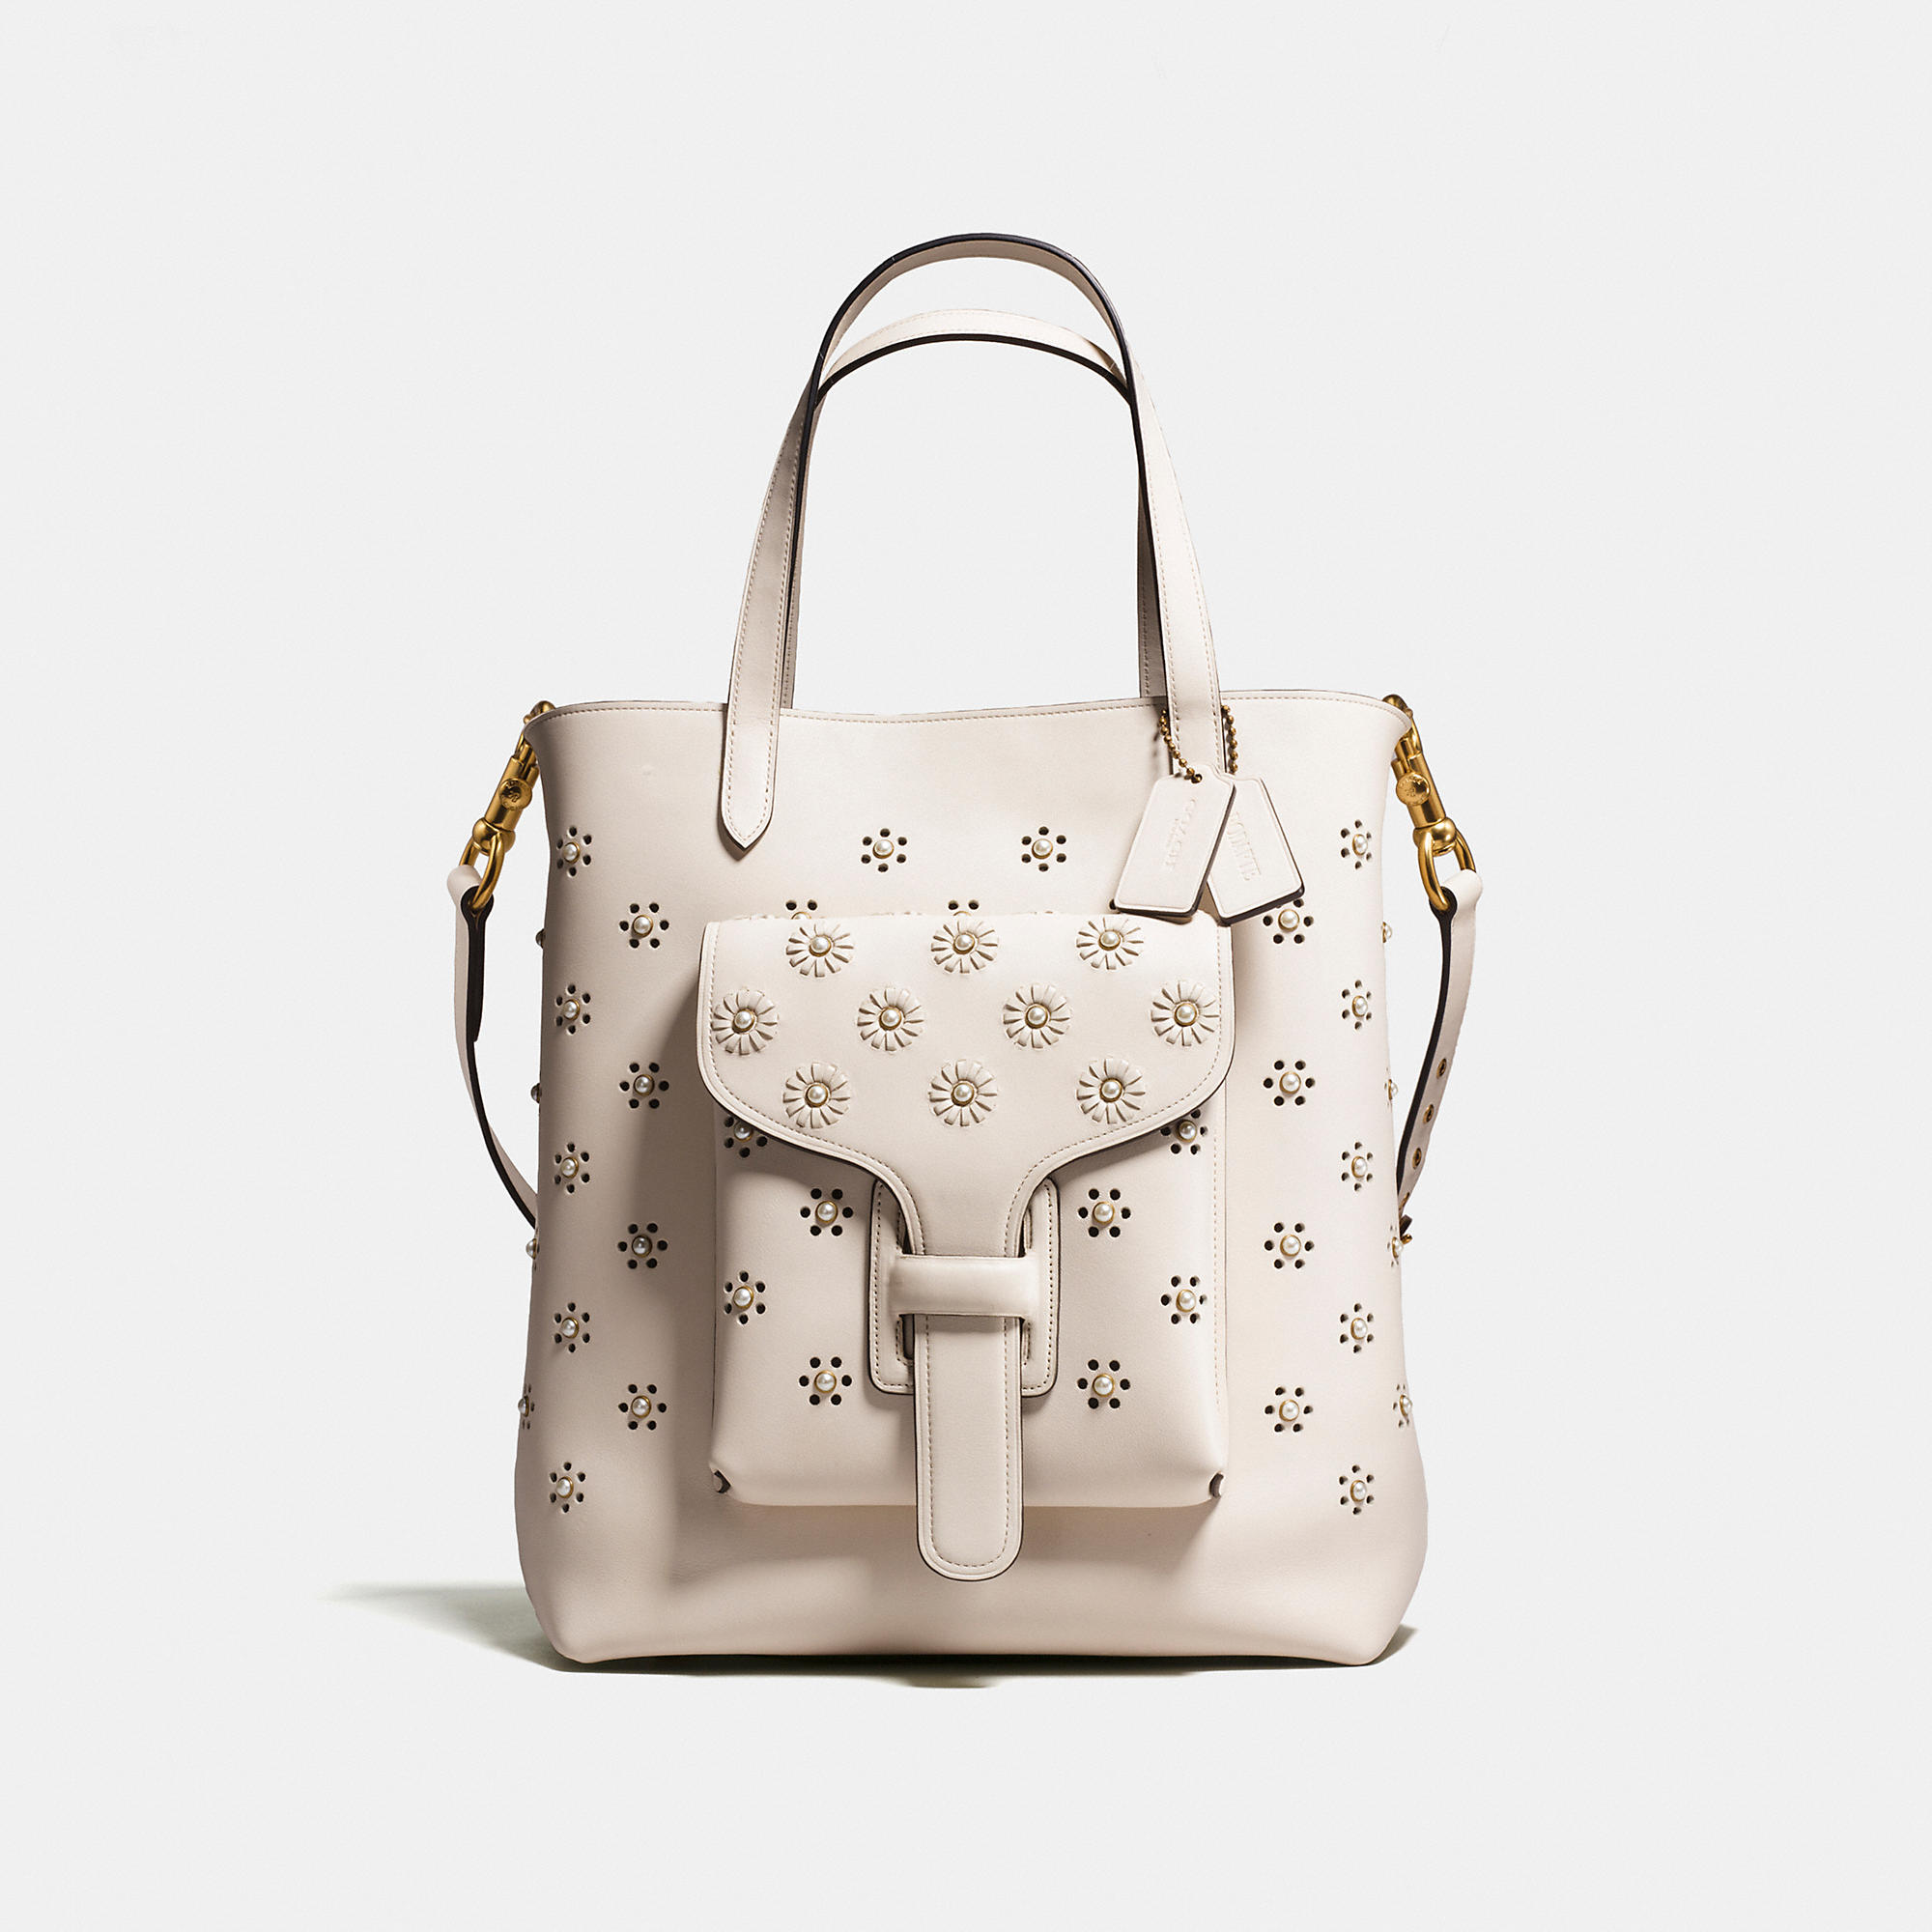 Coach Pocket Tote In Glovetanned Leather With Whipstitch Eyelet